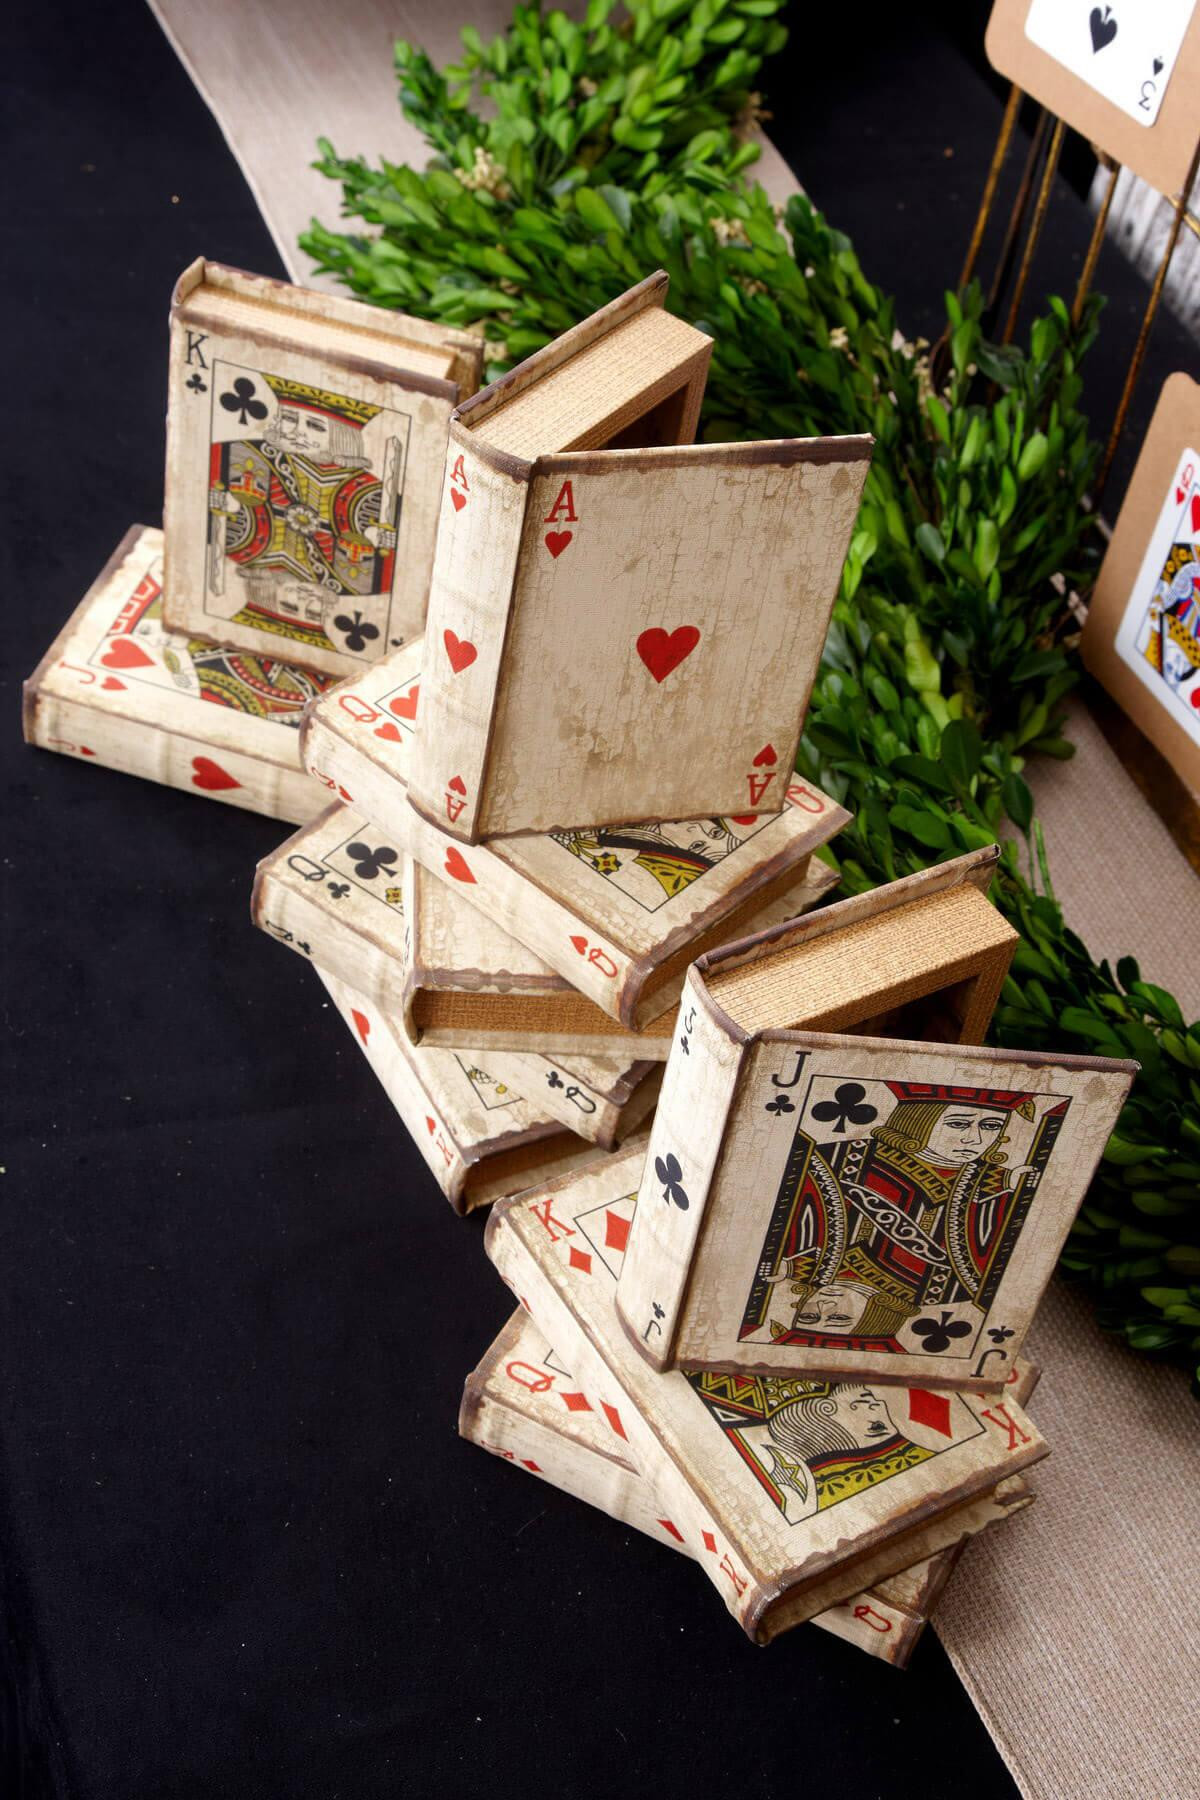 vintage playing card boxes set of 16 3 5 x 5